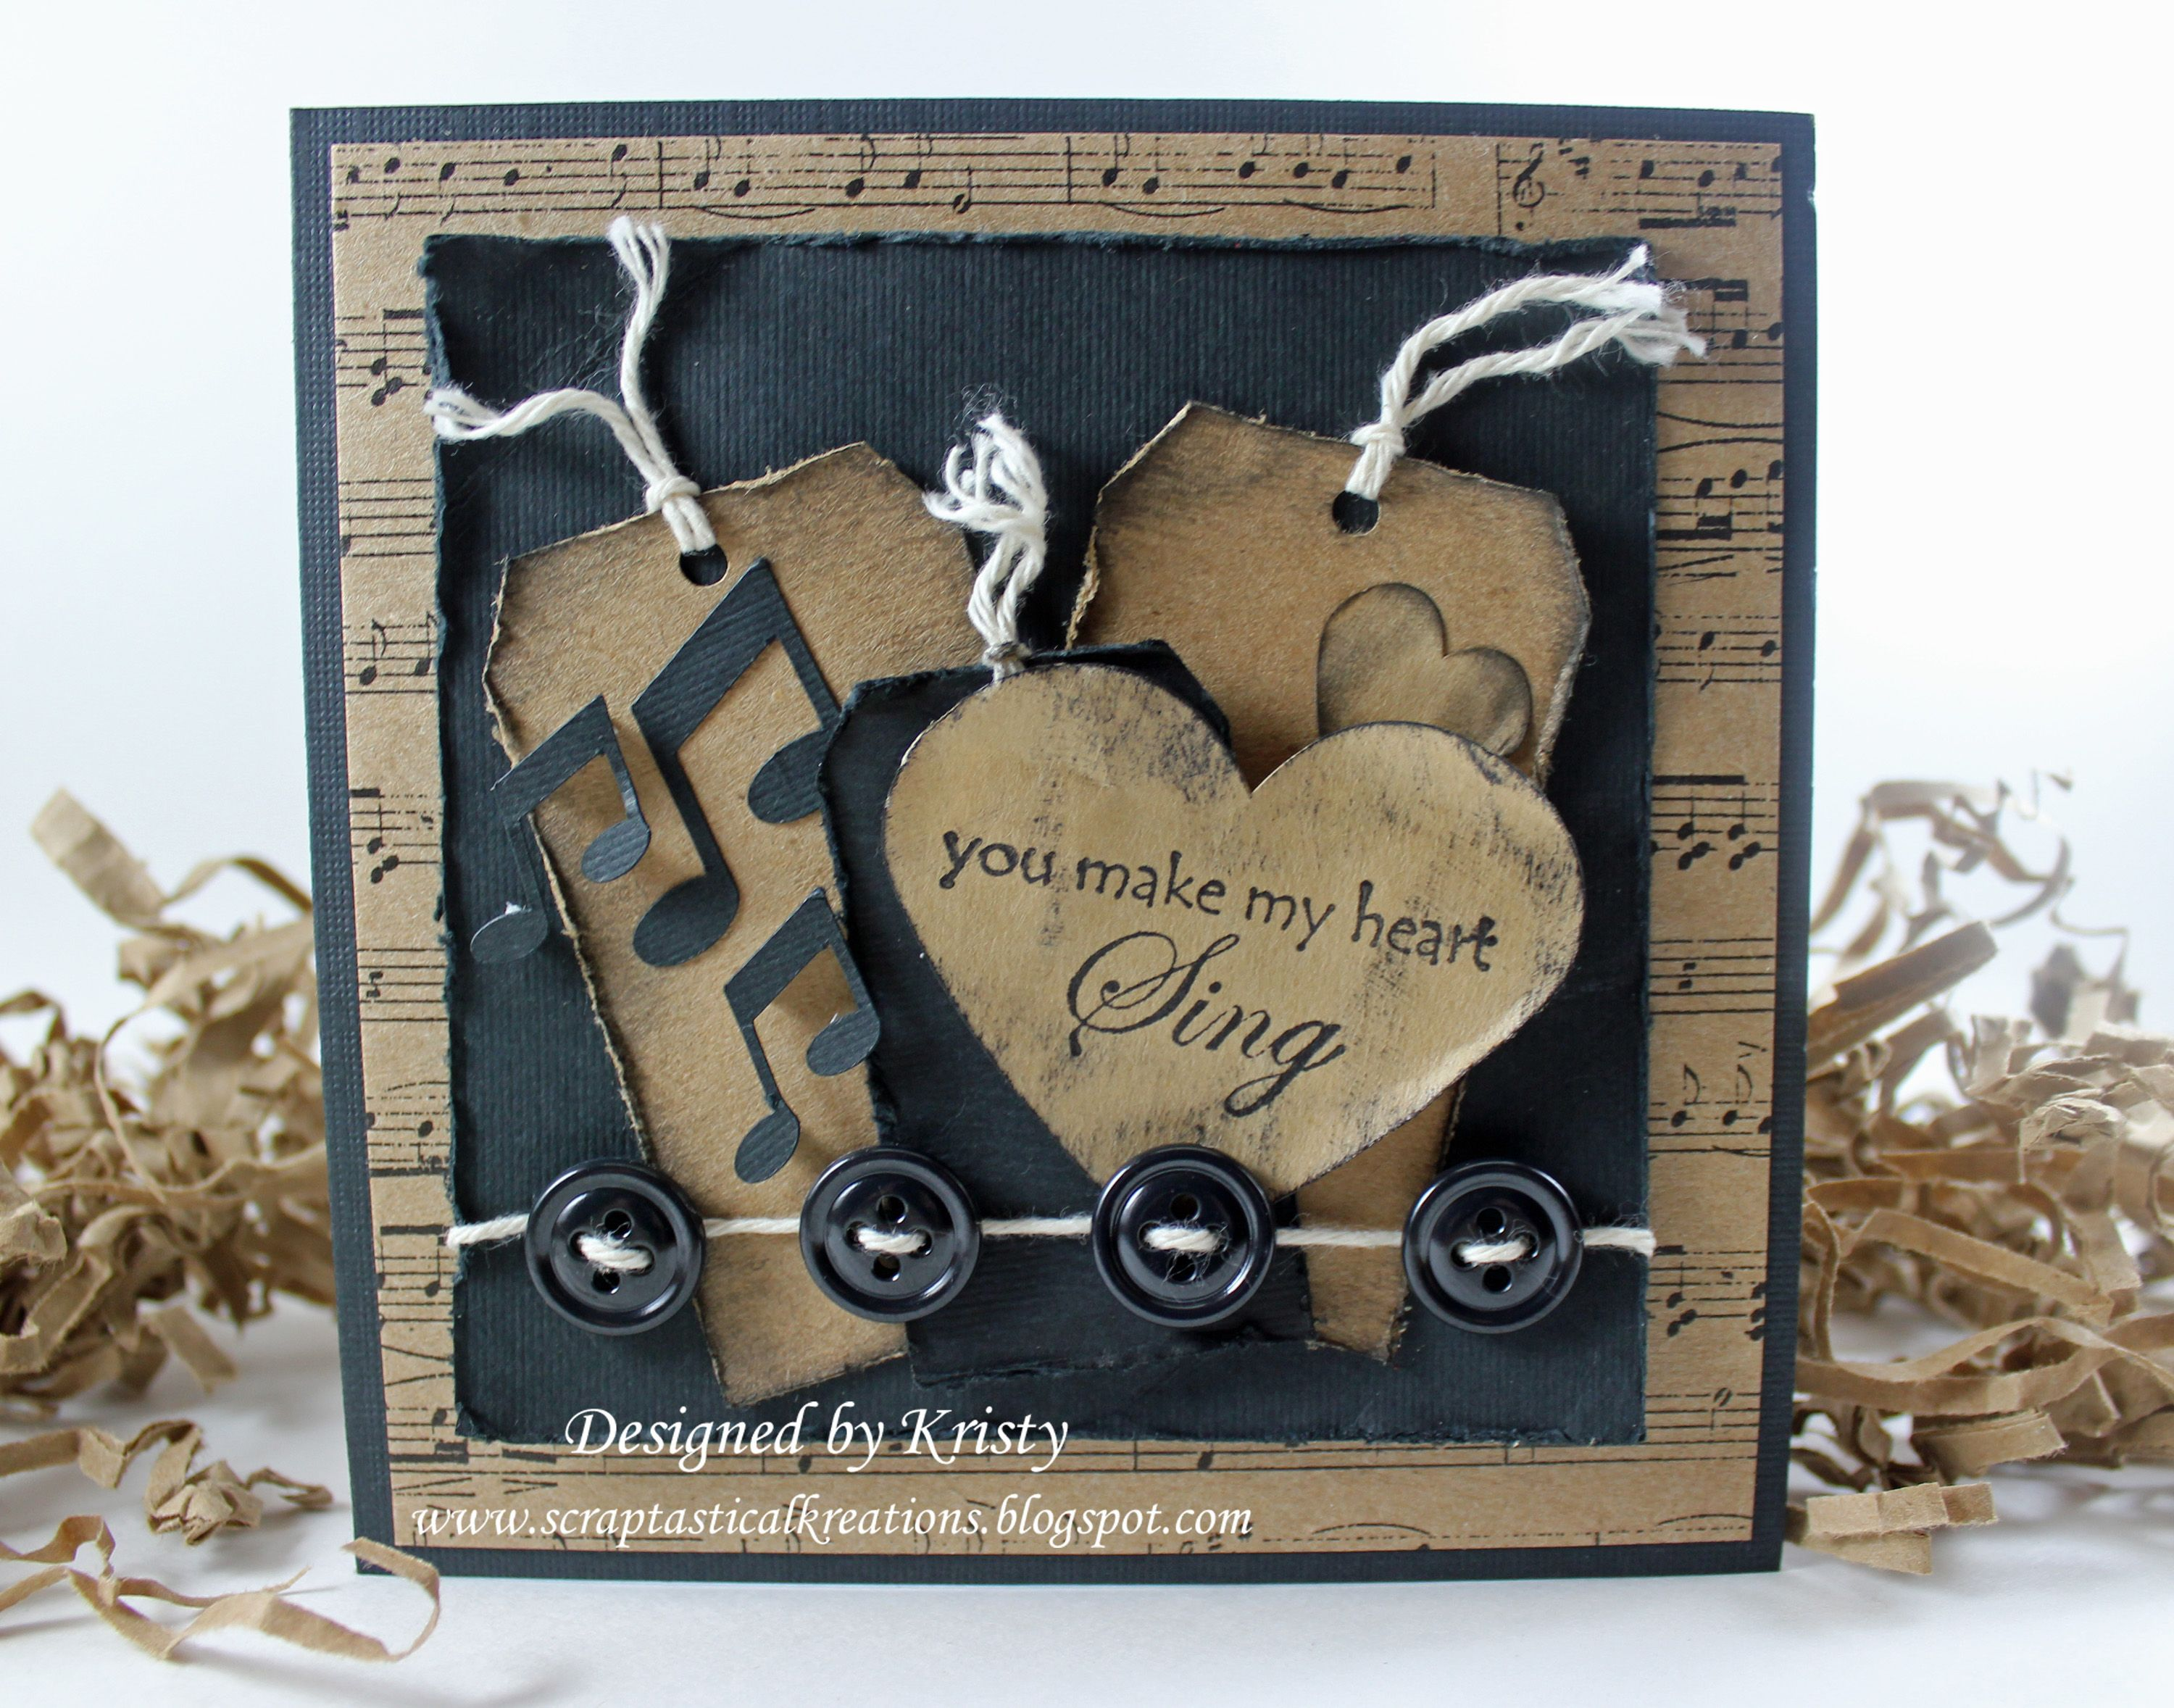 Godmother Quotes For Scrapbooking Quotesgram: You Make My Heart Sing - Scrapbook.com